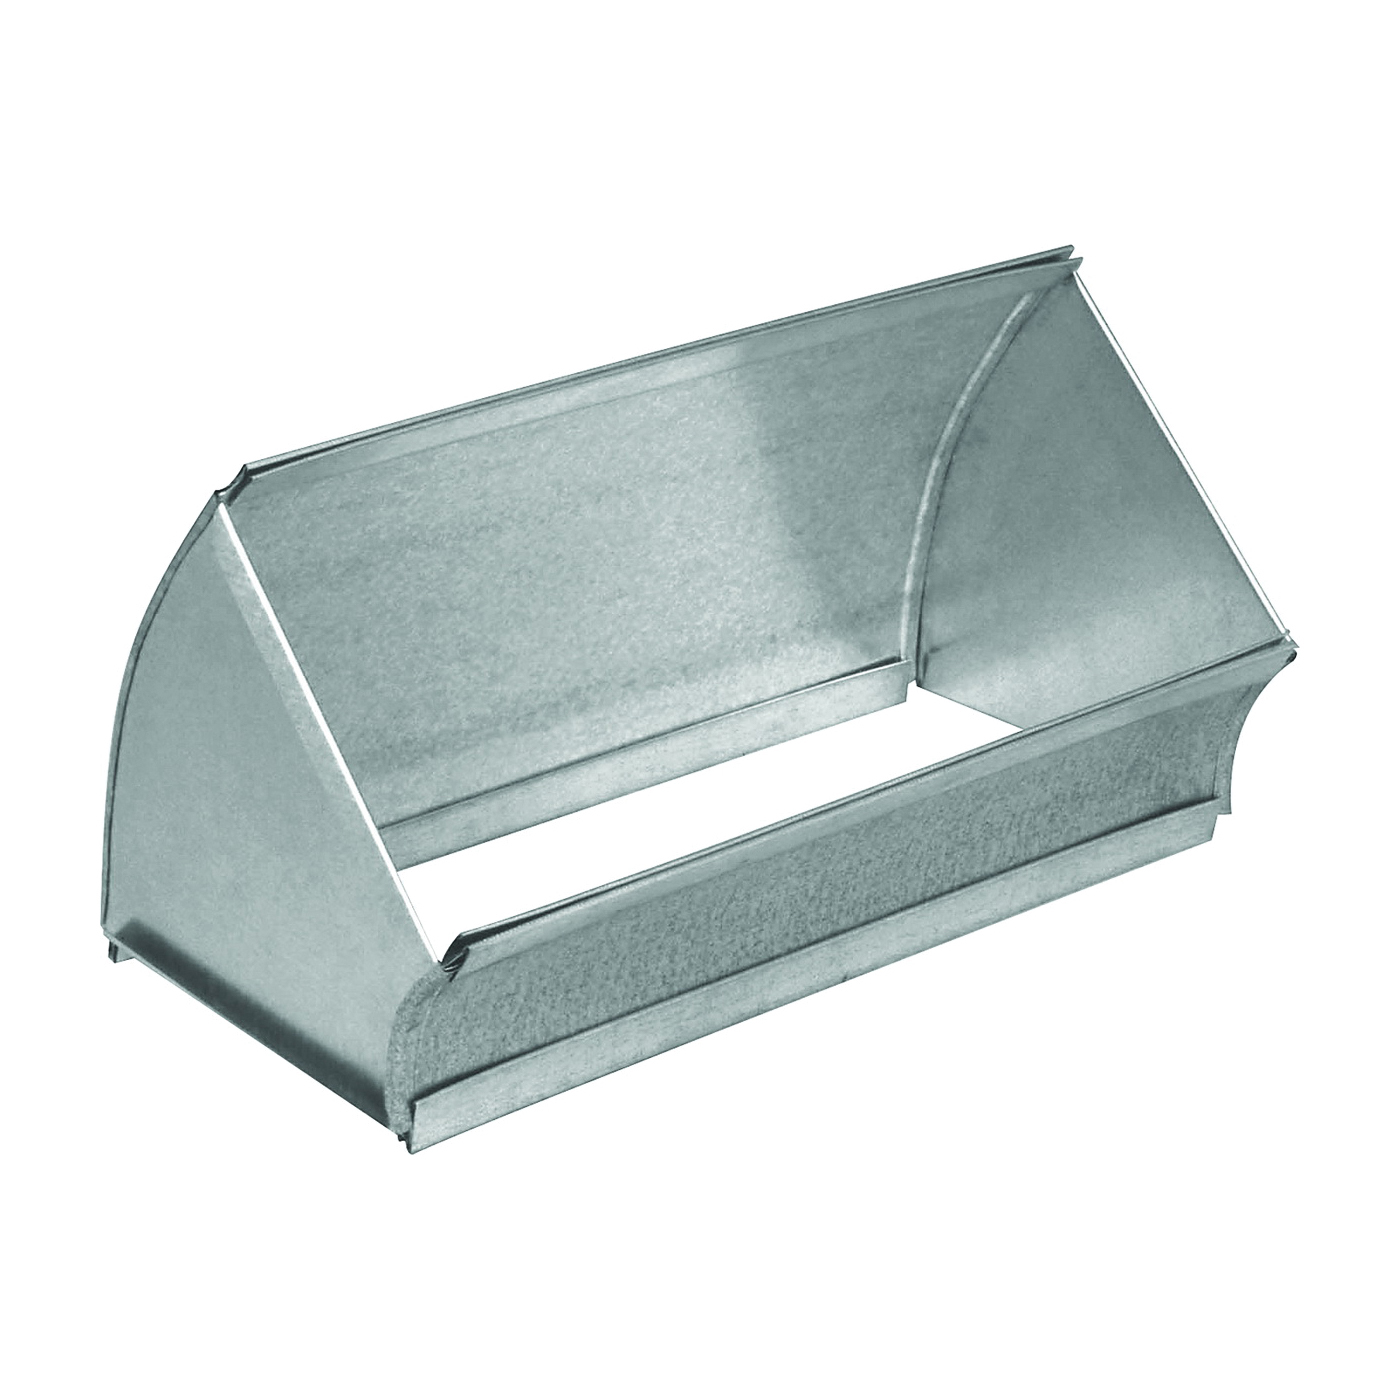 Picture of Imperial GV0048 Flat Shortway Elbow, 30 Gauge, Galvanized Steel